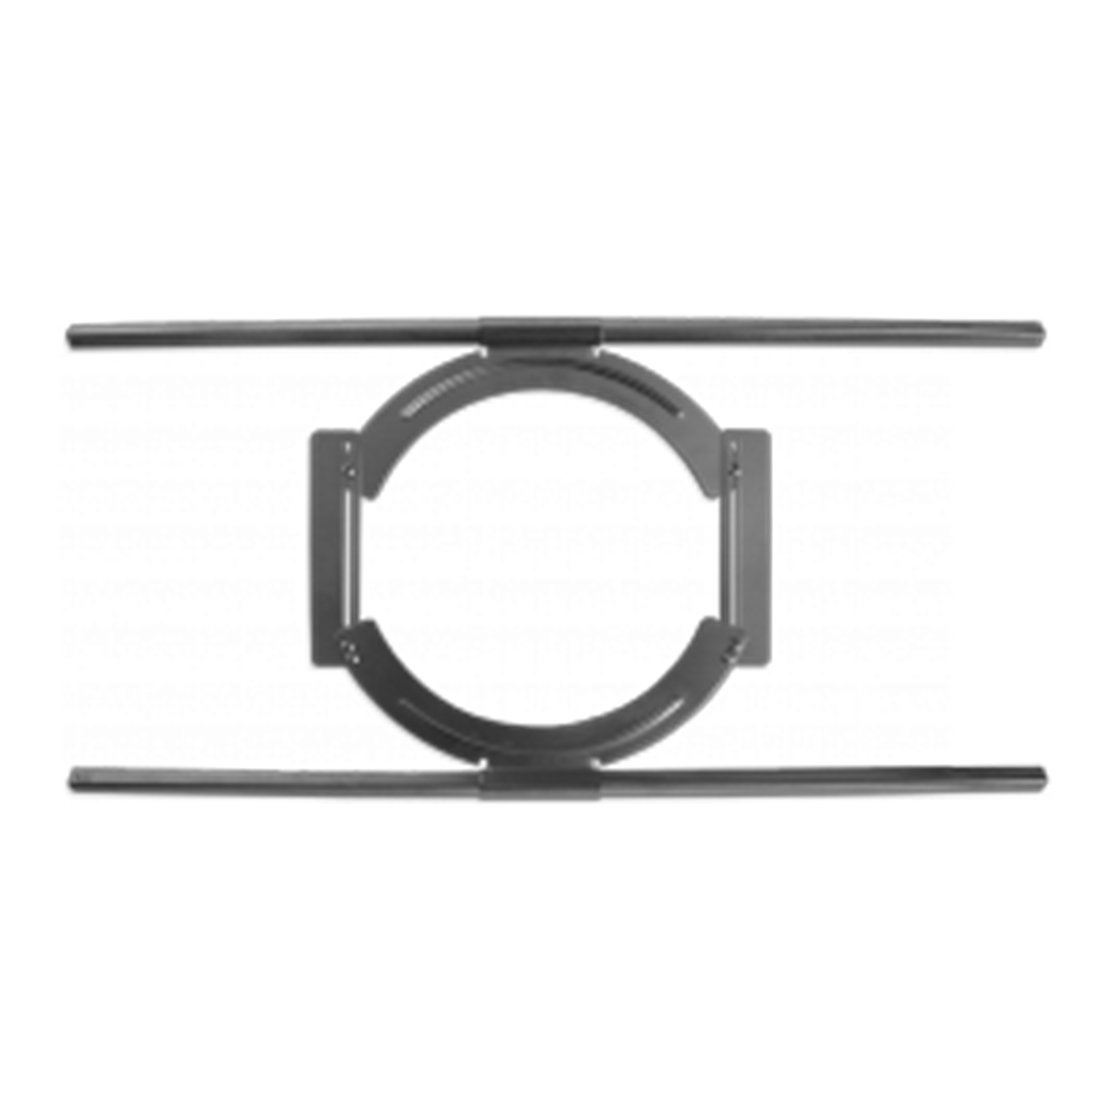 Adjustible Bracket 2 Tile Support Rails For 6 5 In Ceiling Speakers Universal